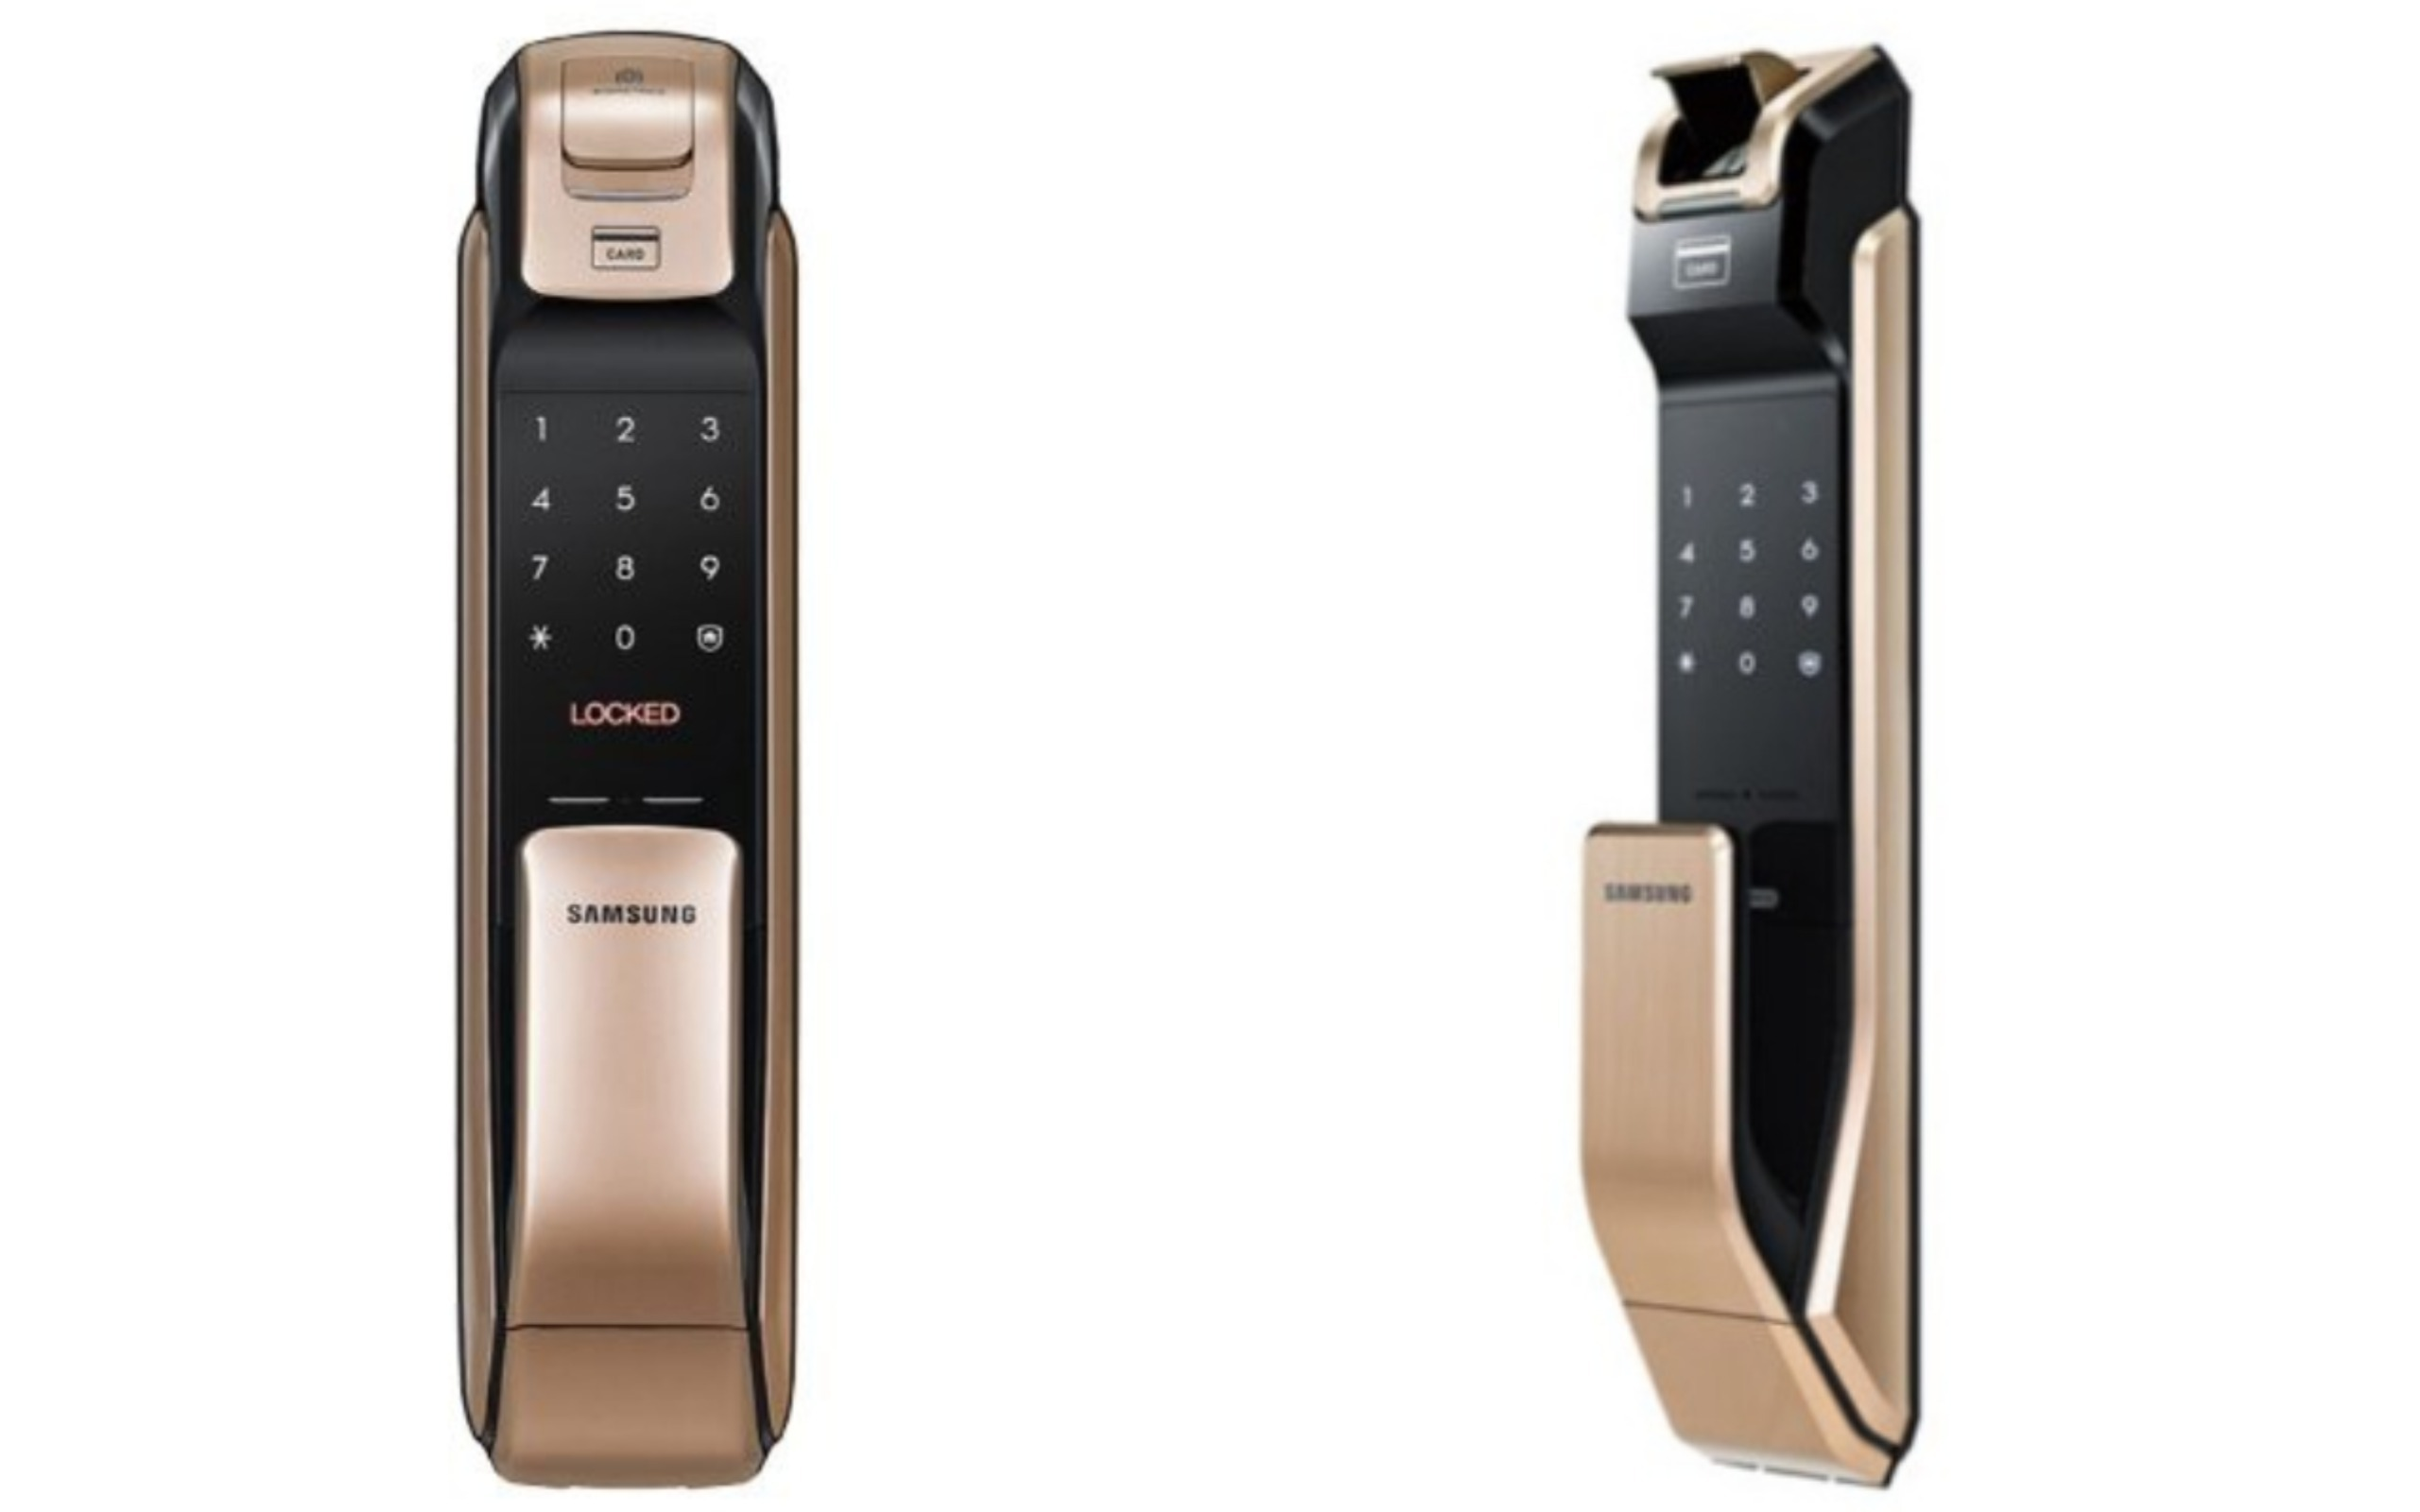 Smart Home Singapore Samsung Digital Lock